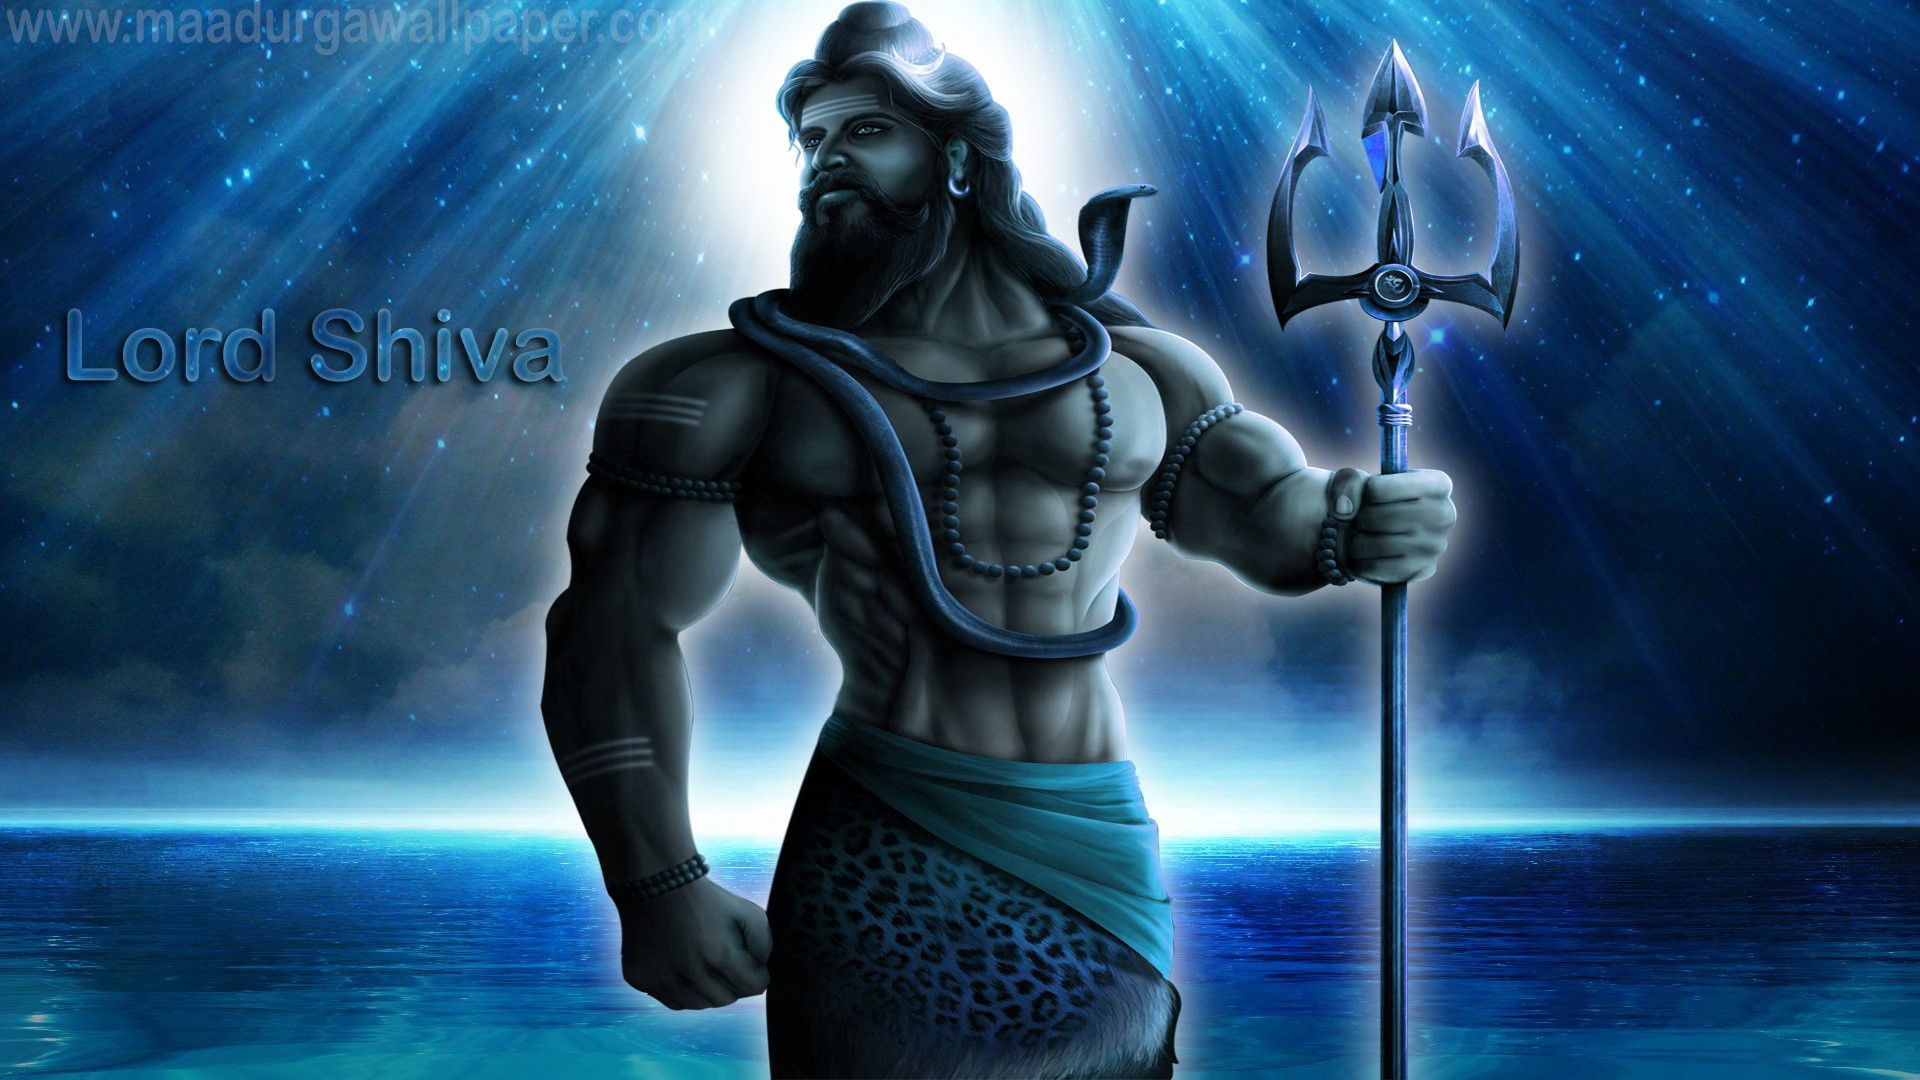 1920x1080 Jai Shiv Shankar Wallpaper Lord Shiva Hd Wallpaper